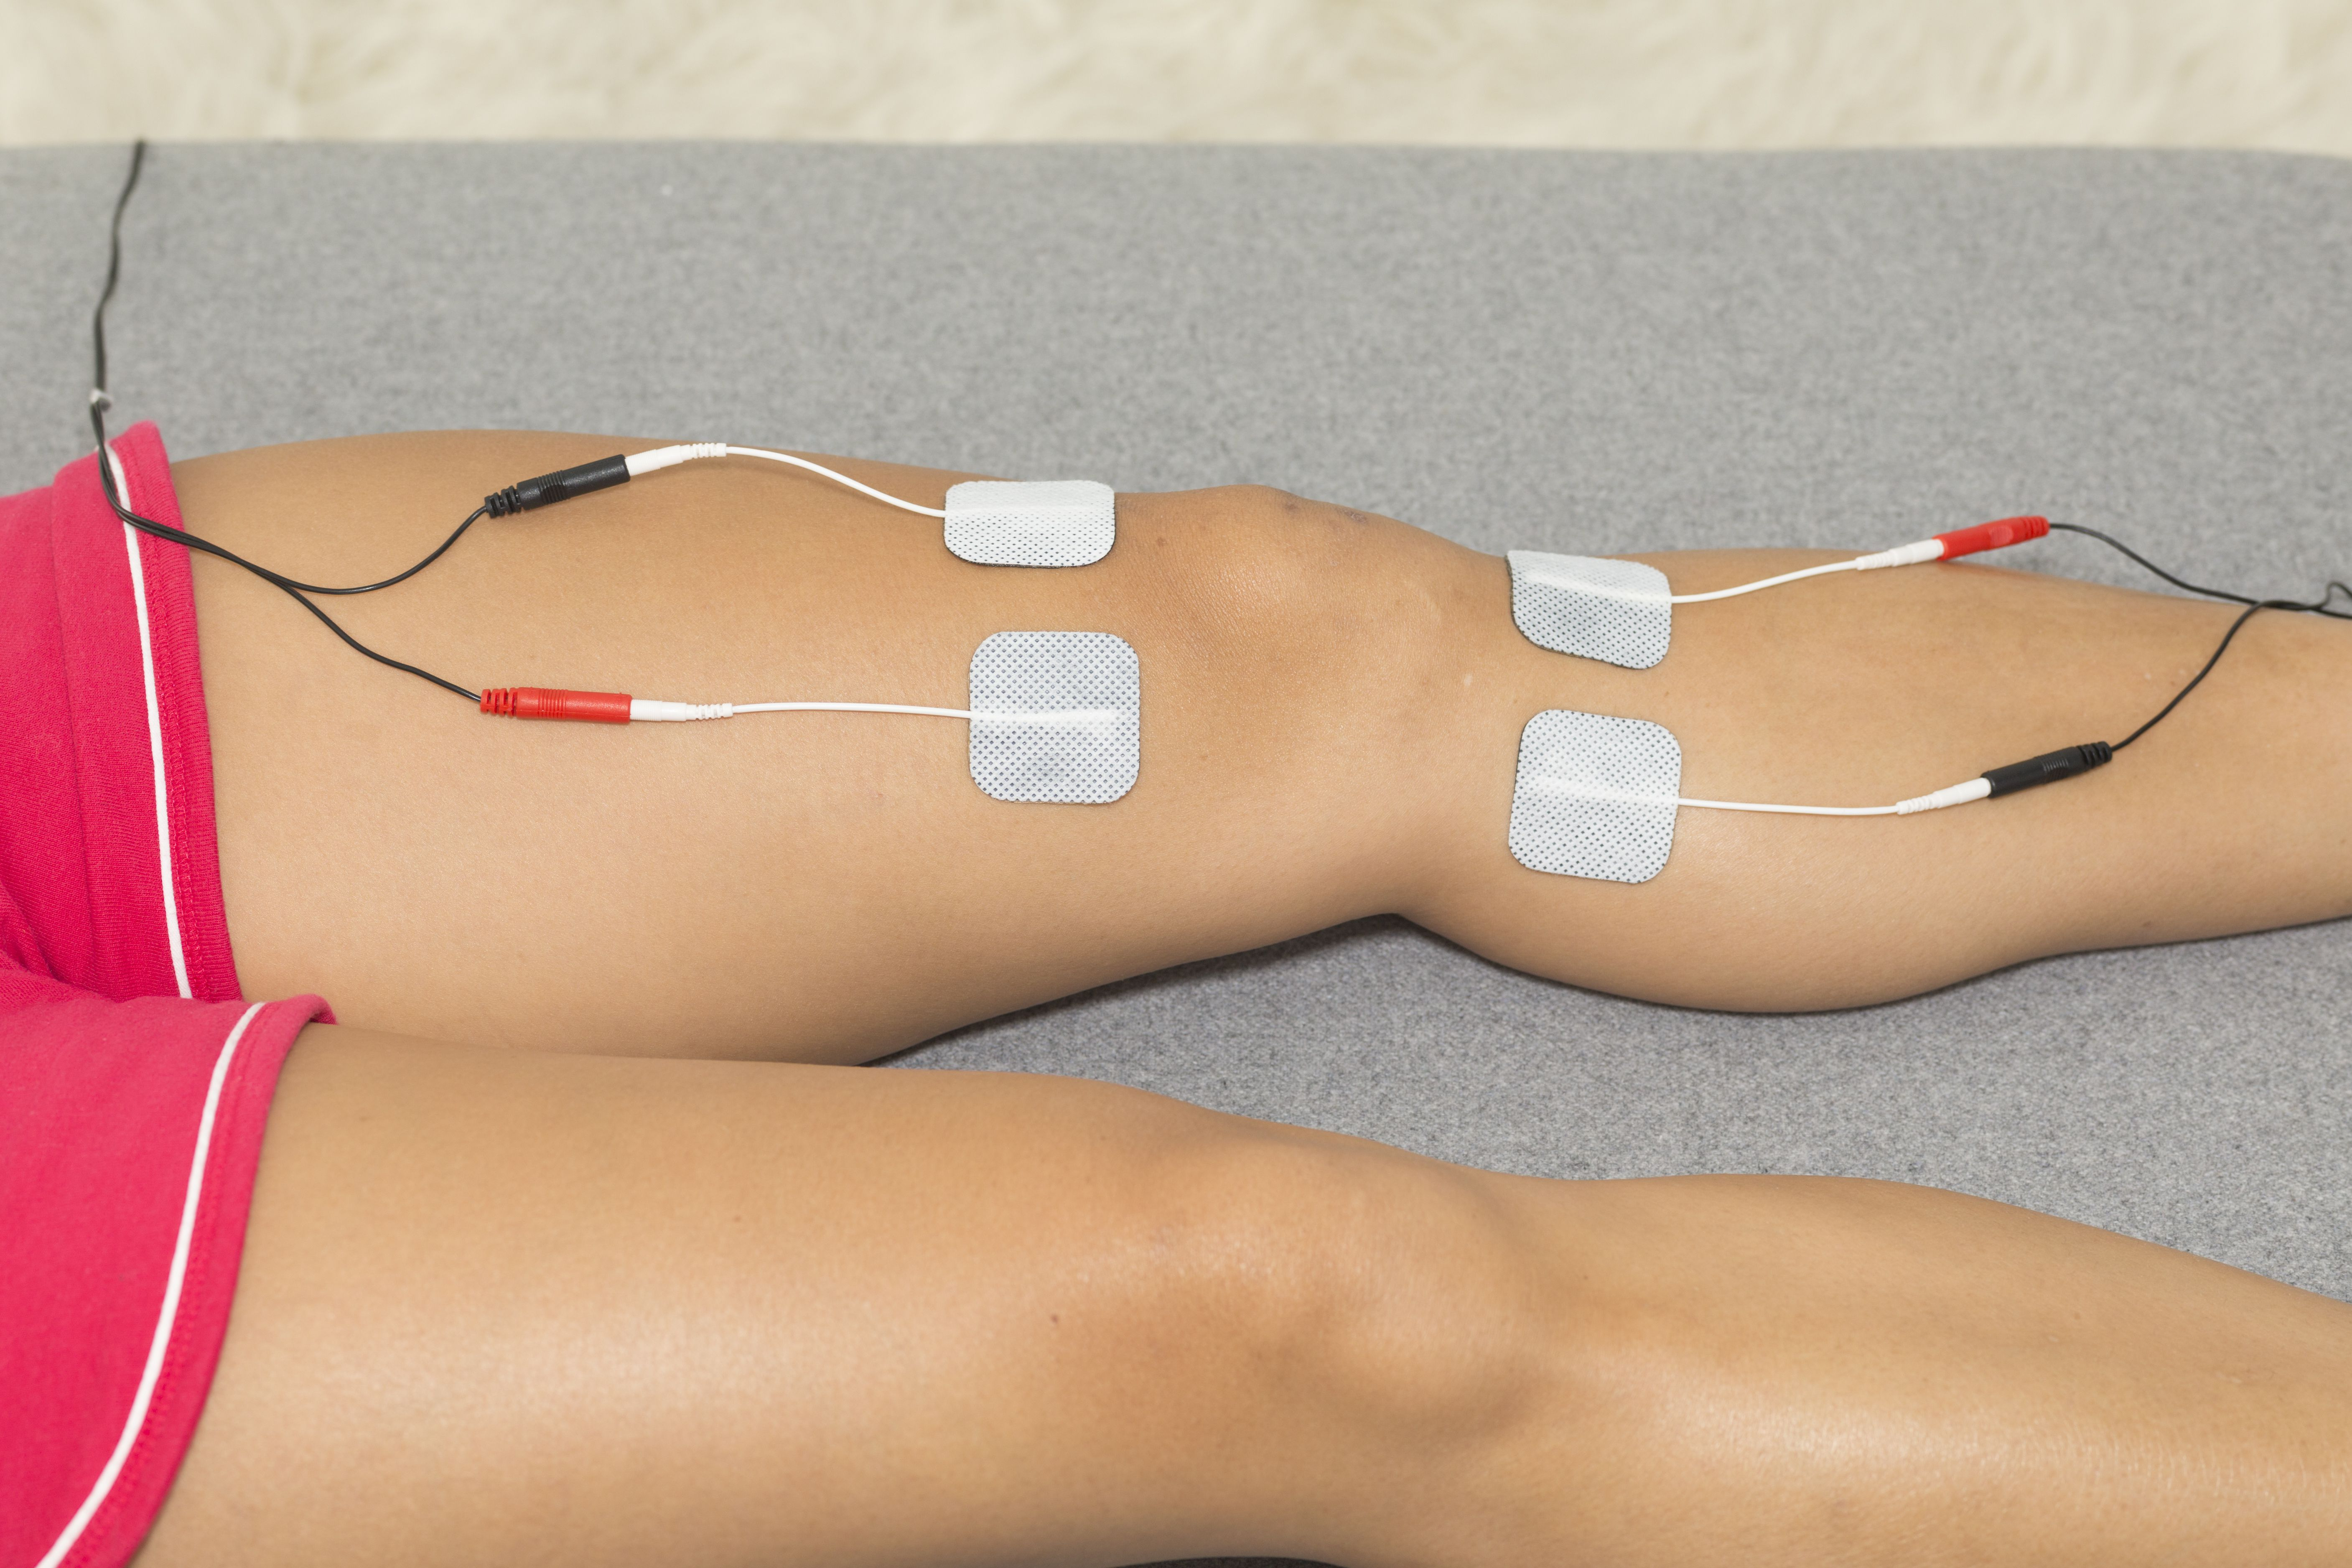 Types of Electrical Stimulation Used in PT